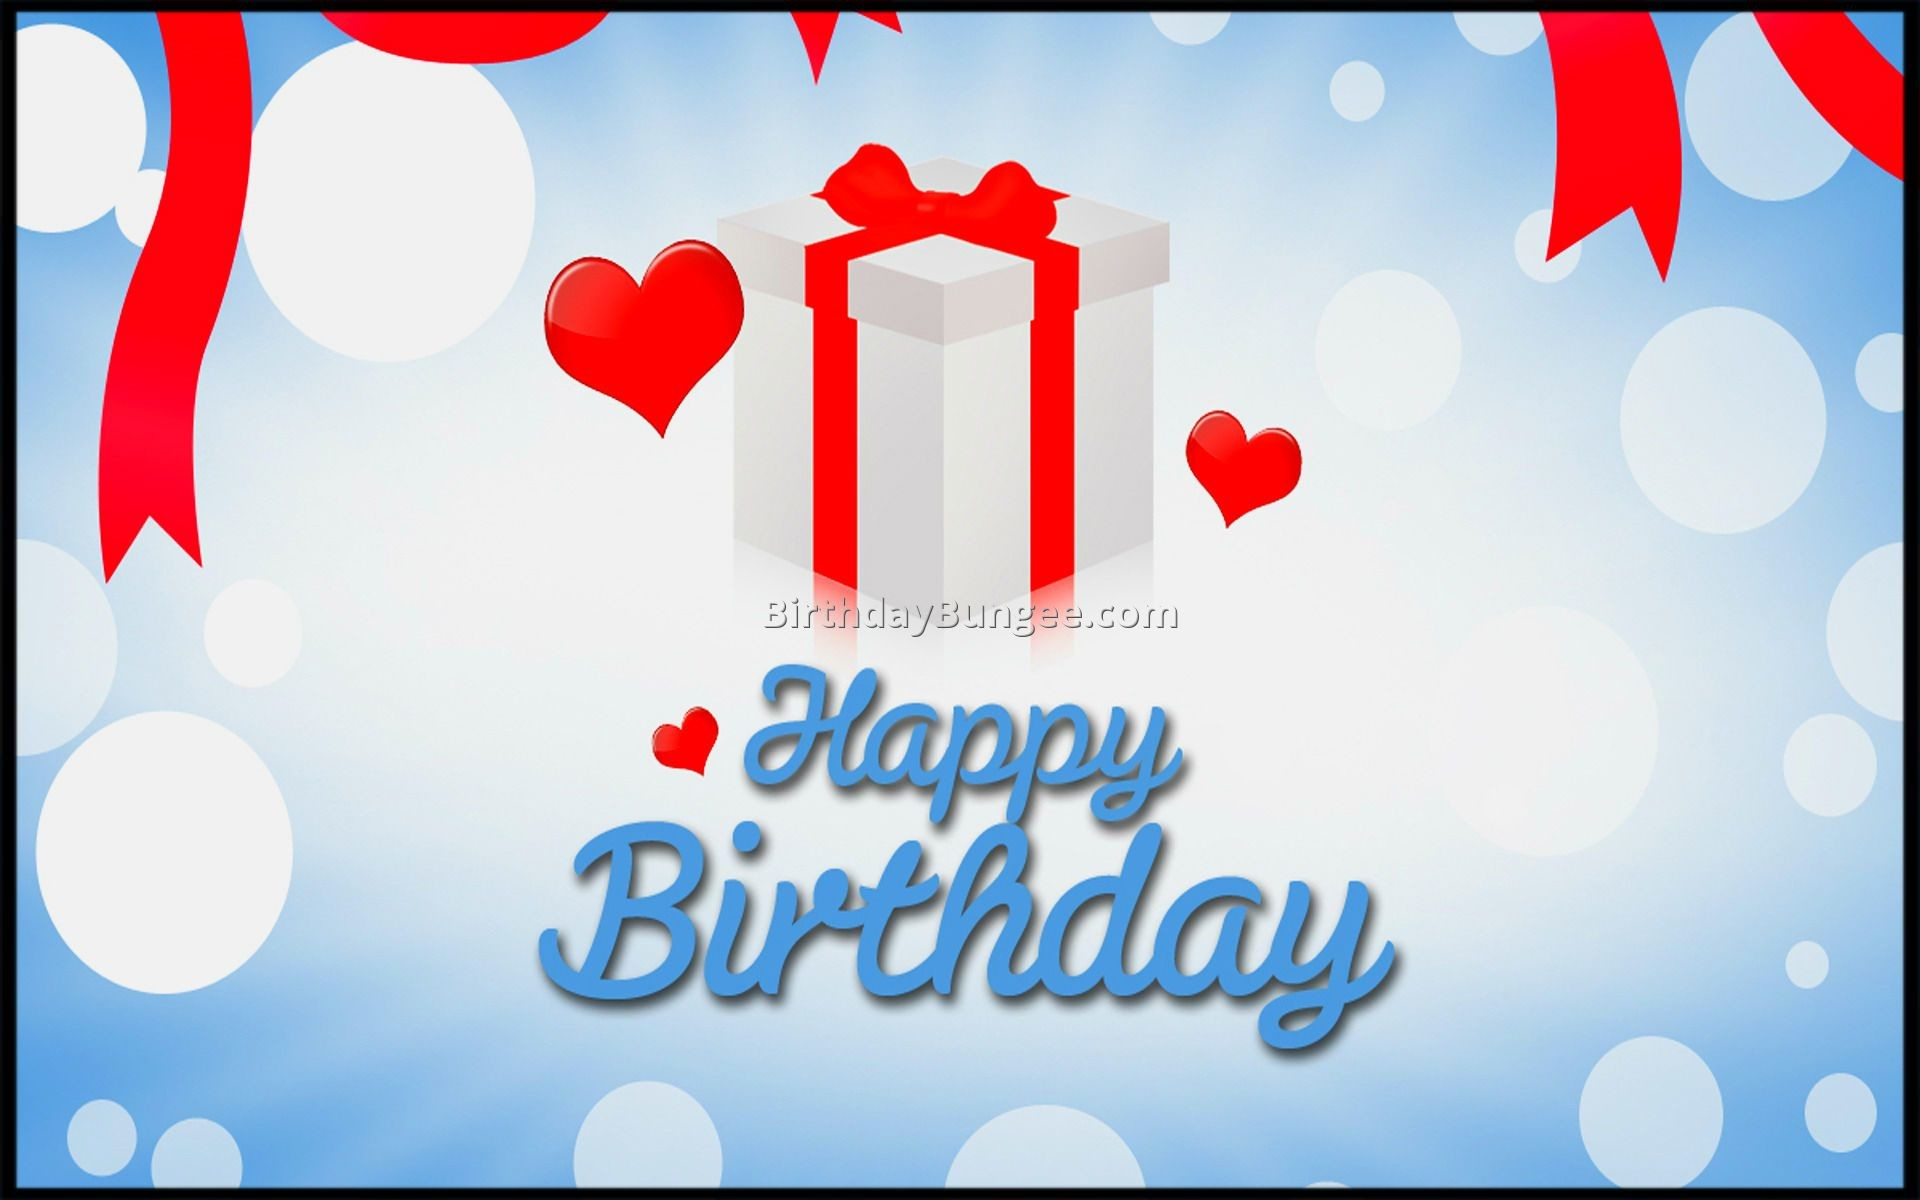 Hindi Romantic Love Wallpapers With Quotes Happy Birthday Love Wallpaper 53 Images